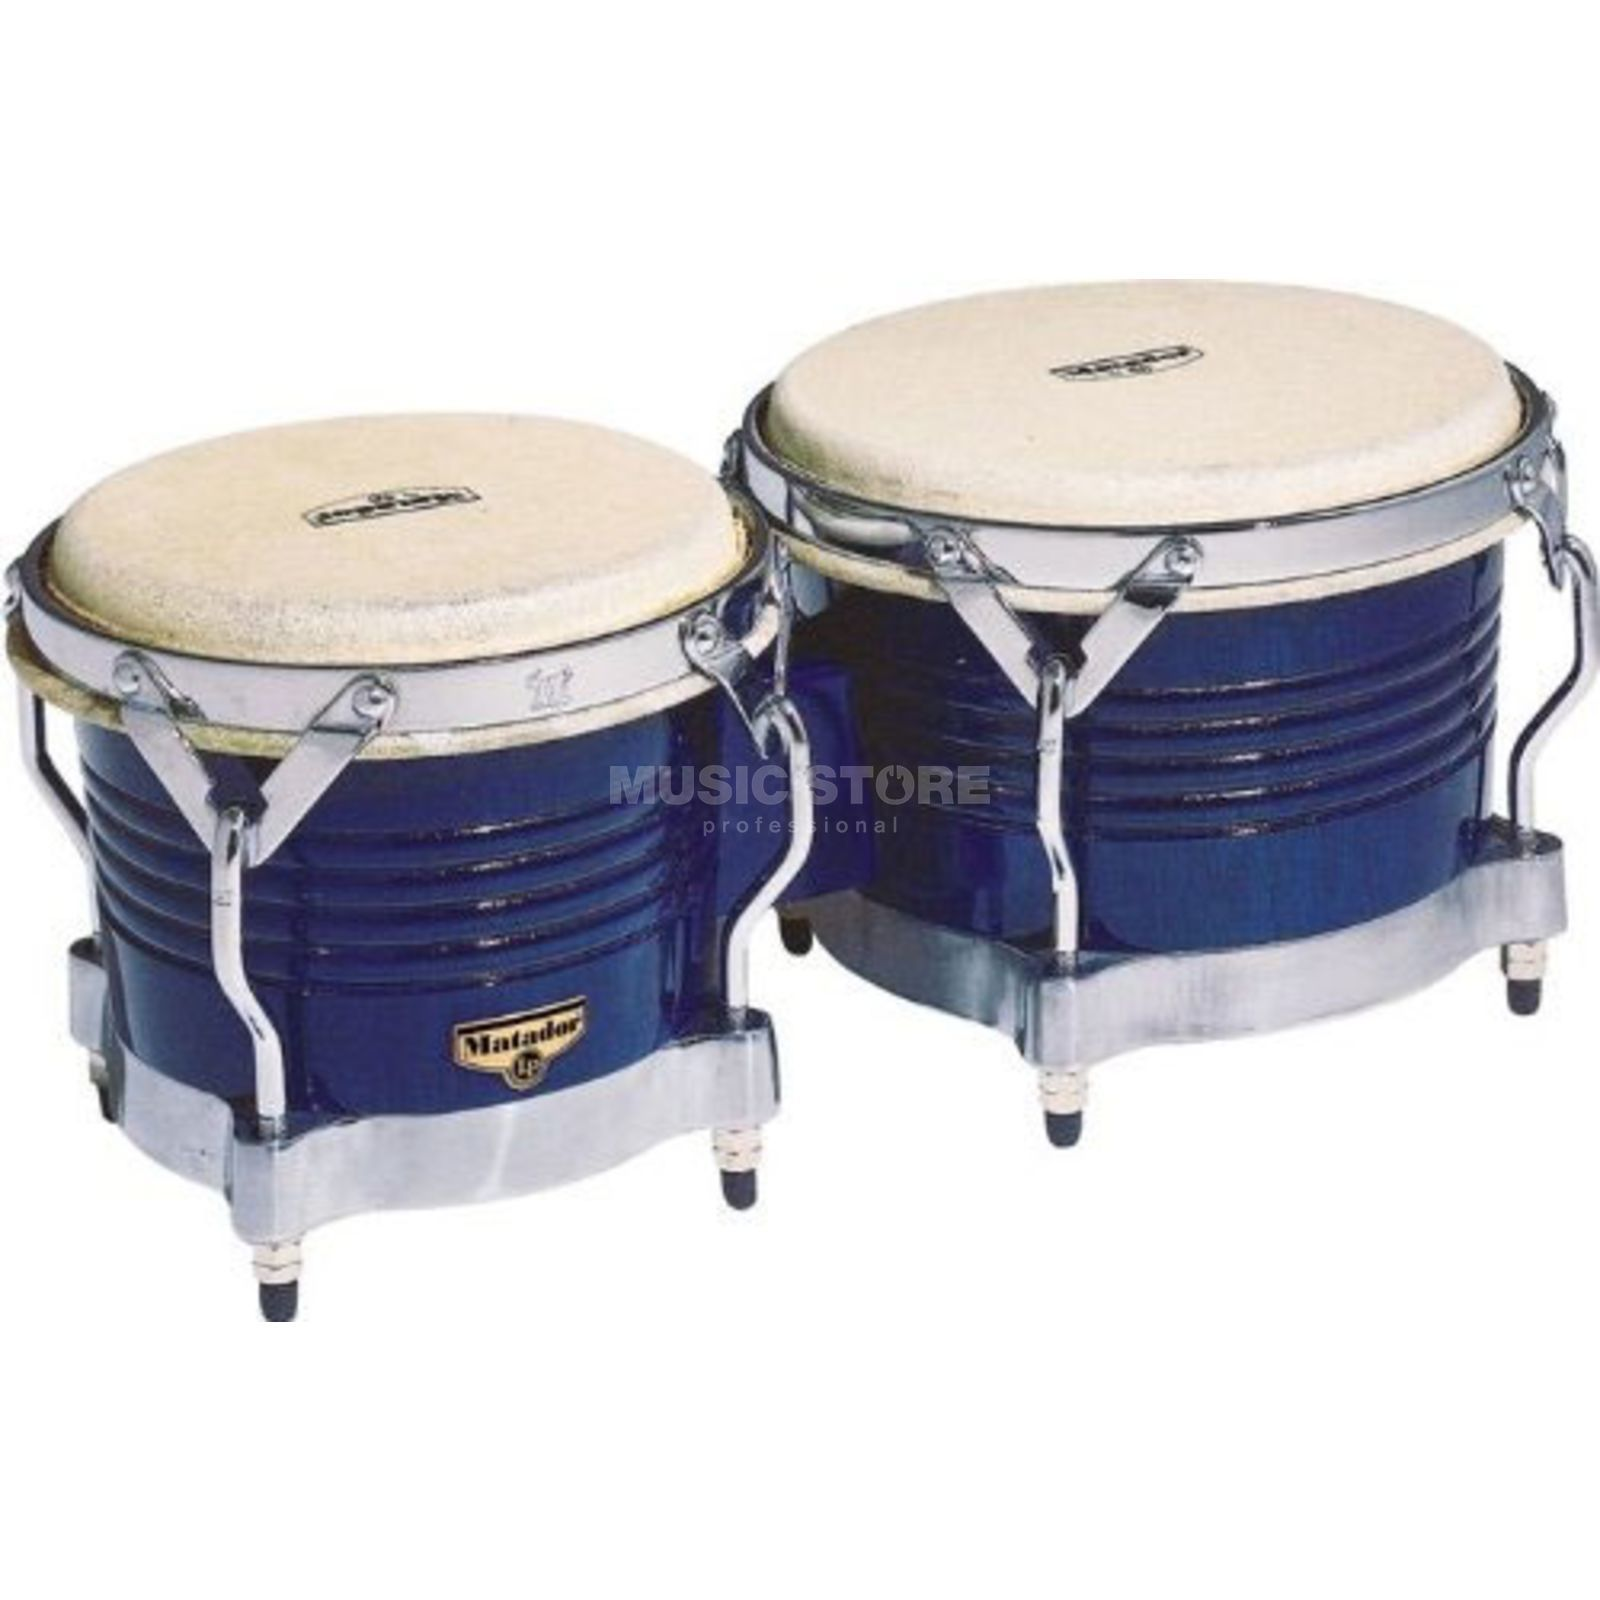 "Latin Percussion Matador Bongos M201-BLWC 7 1/4""+ 8 5/8"", Blue Product Image"